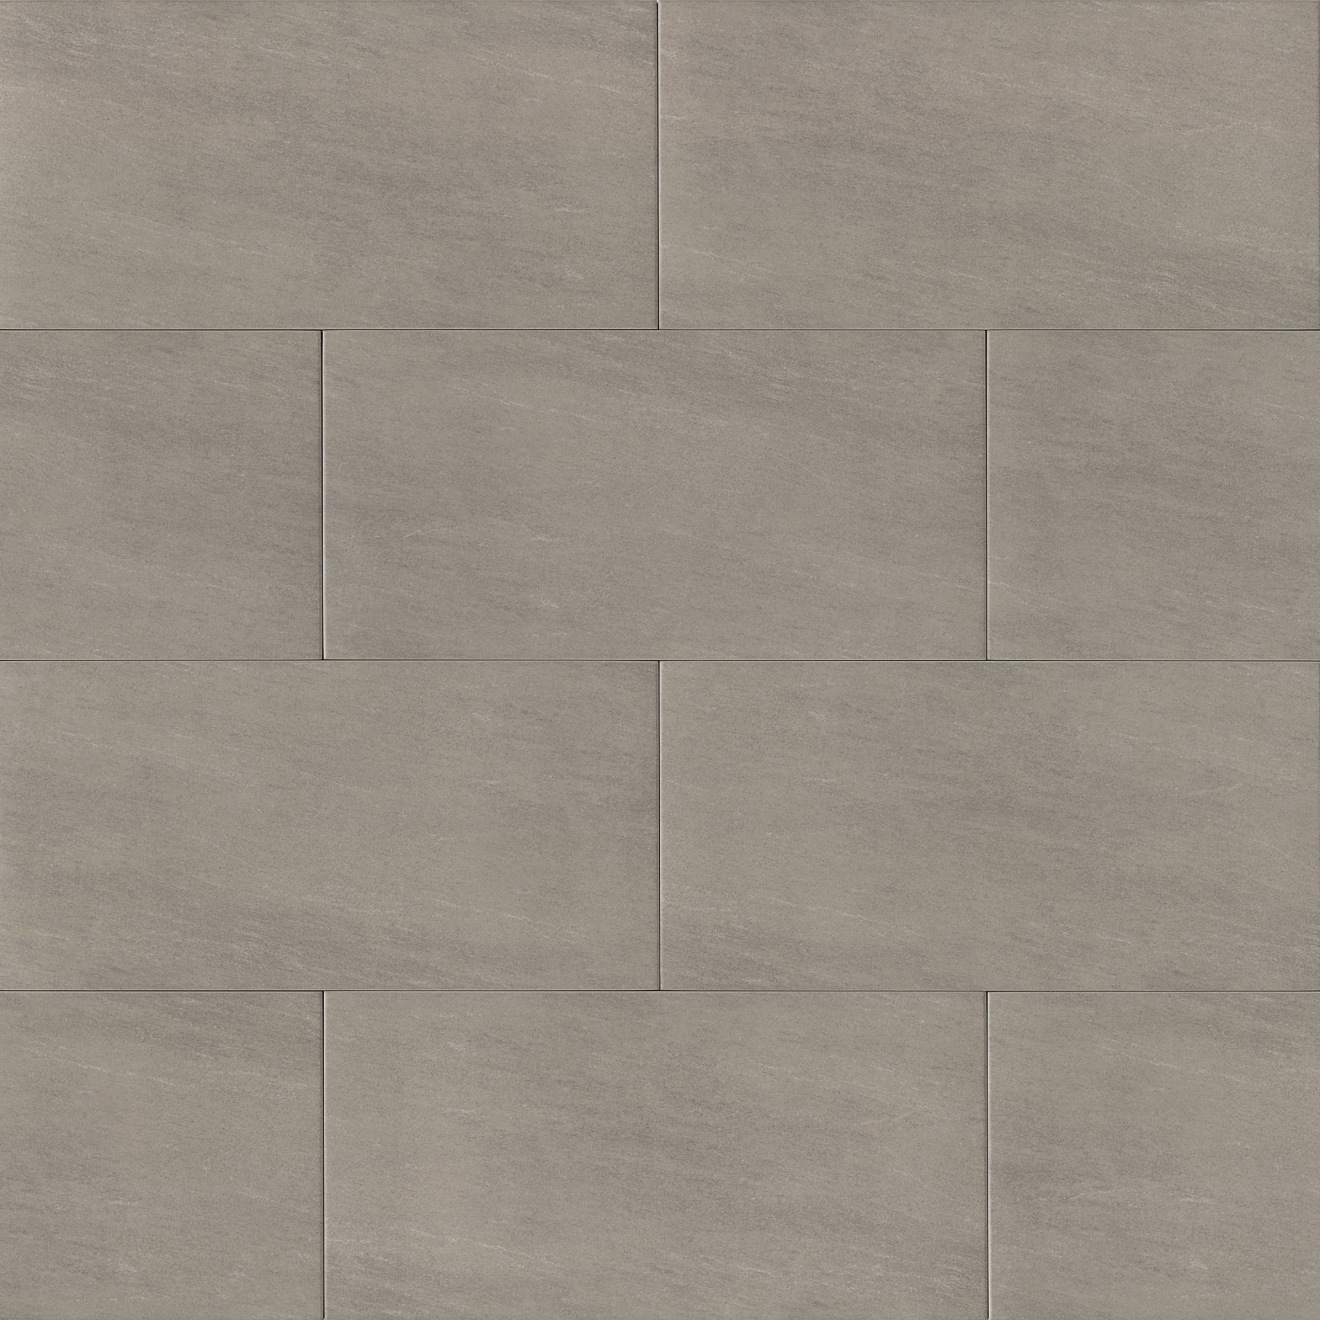 moonstone 12 x 24 x 5 16 floor and wall tile in light grey